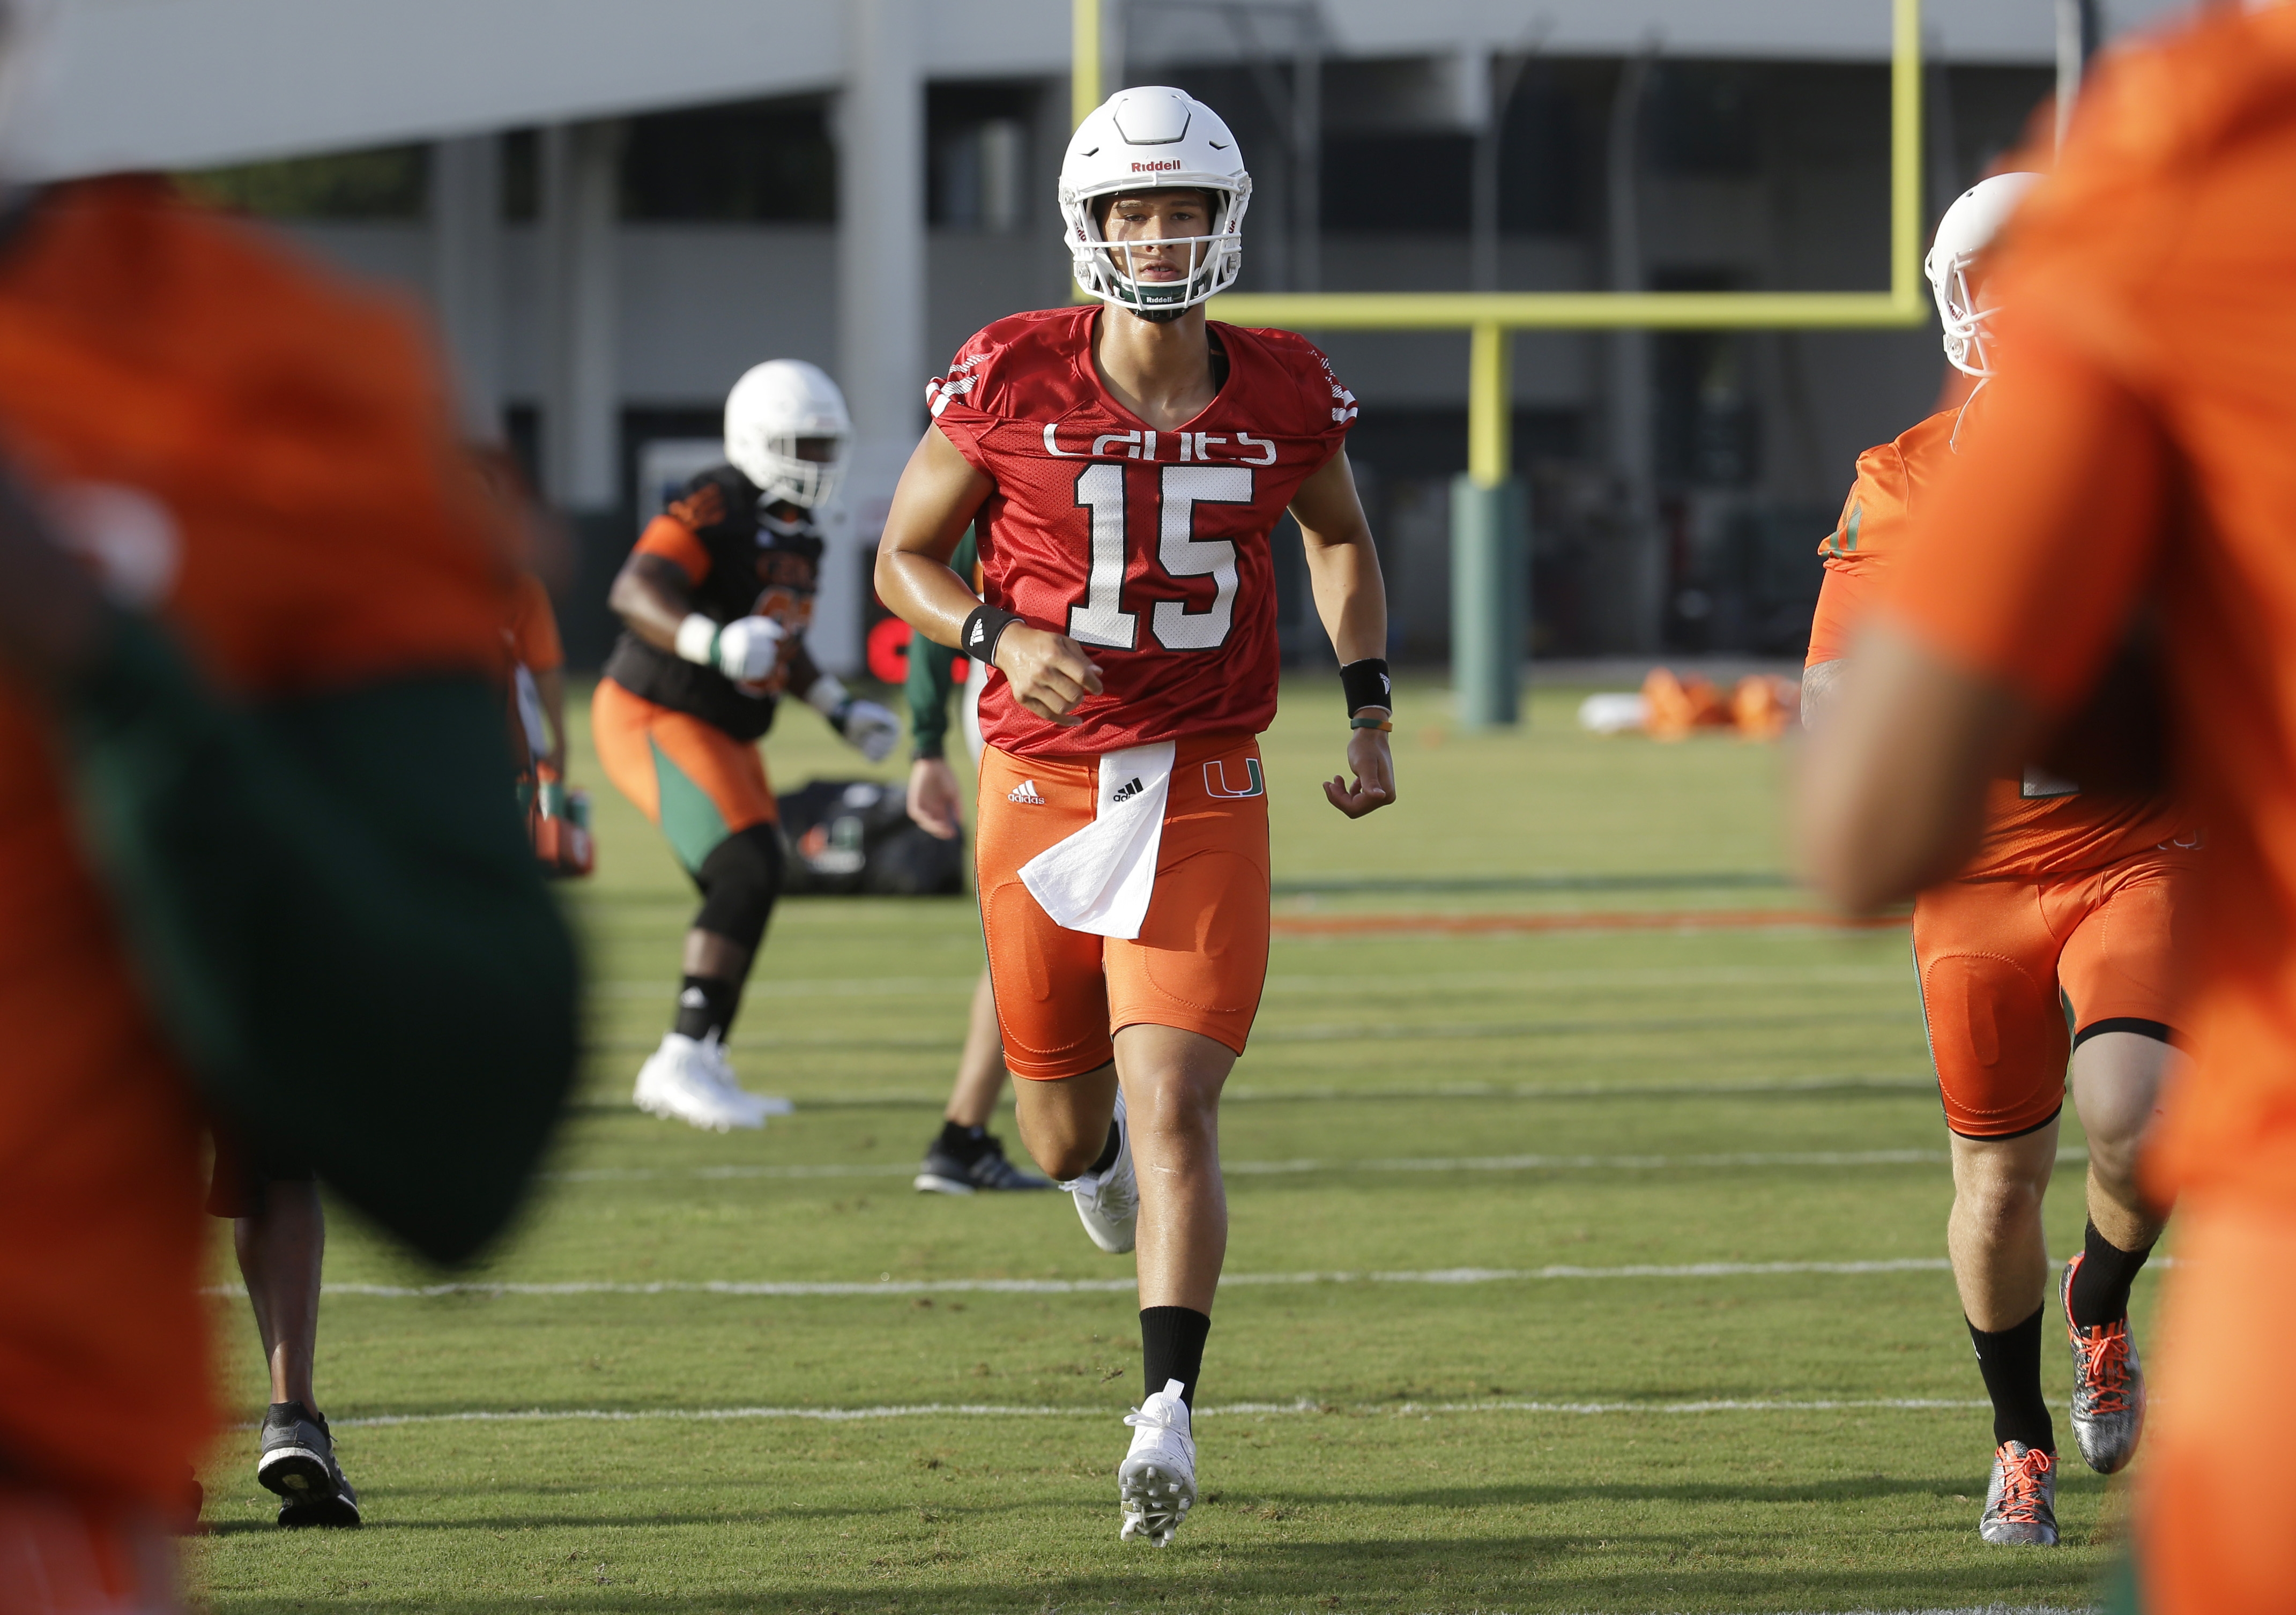 Miami quarterback Brad Kaaya (15) runs drills during NCAA college football practice, Thursday, Aug. 6, 2015,  in Coral Gables, Fla. The latest effort toward rebuilding, reshaping and rebranding the Hurricanes started more than seven months ago and the nex